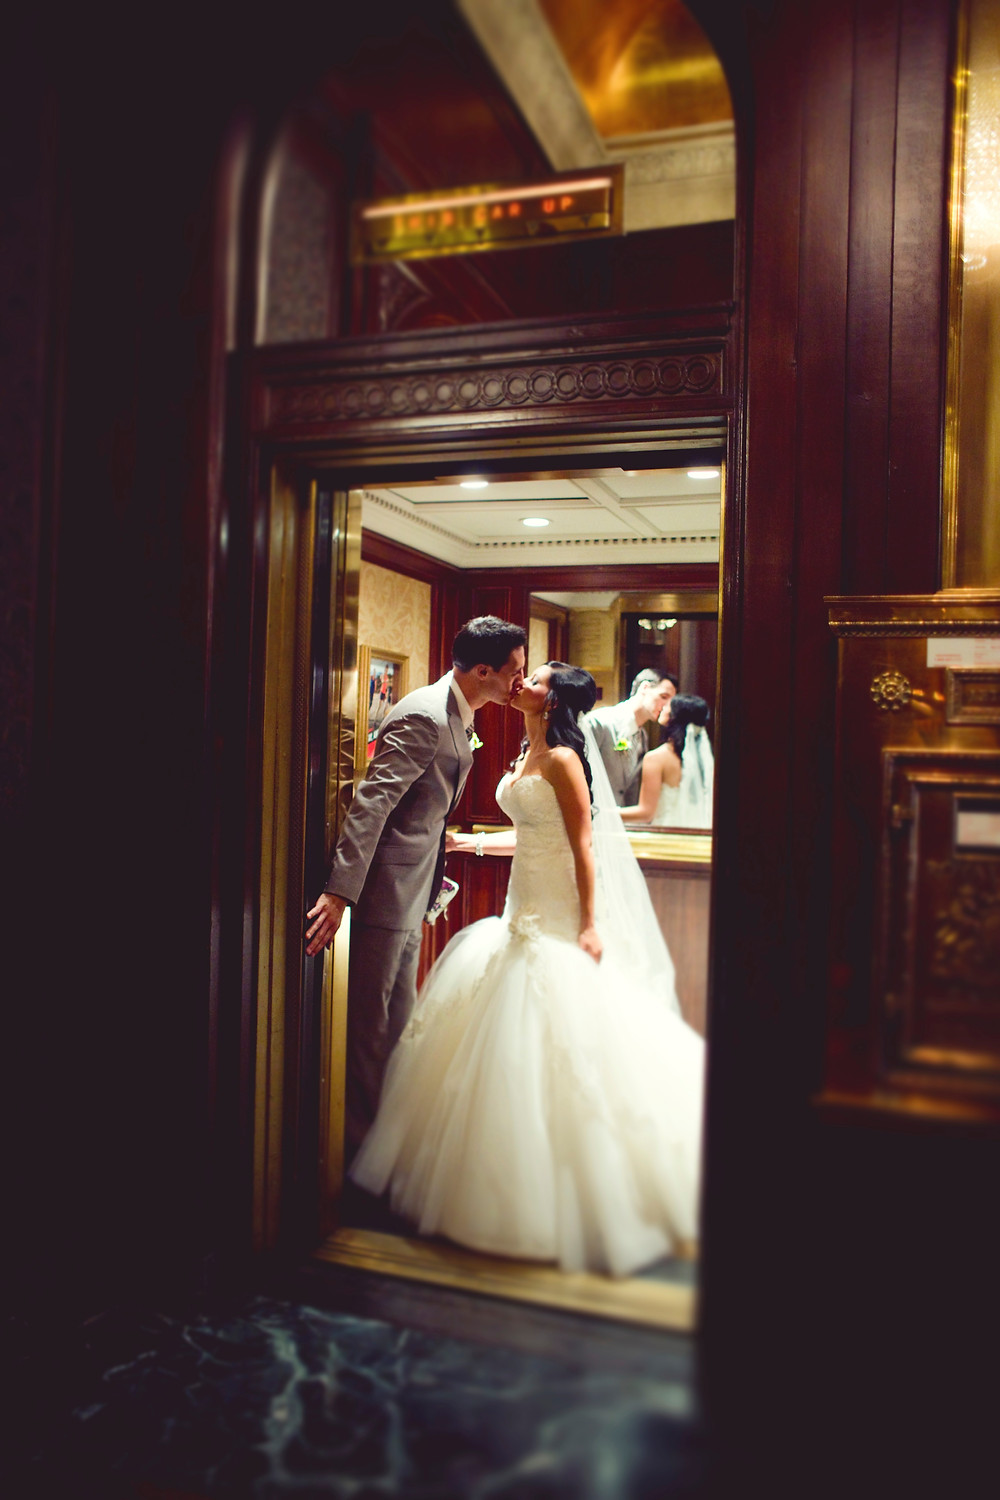 A bride and groom standing in an elevator.